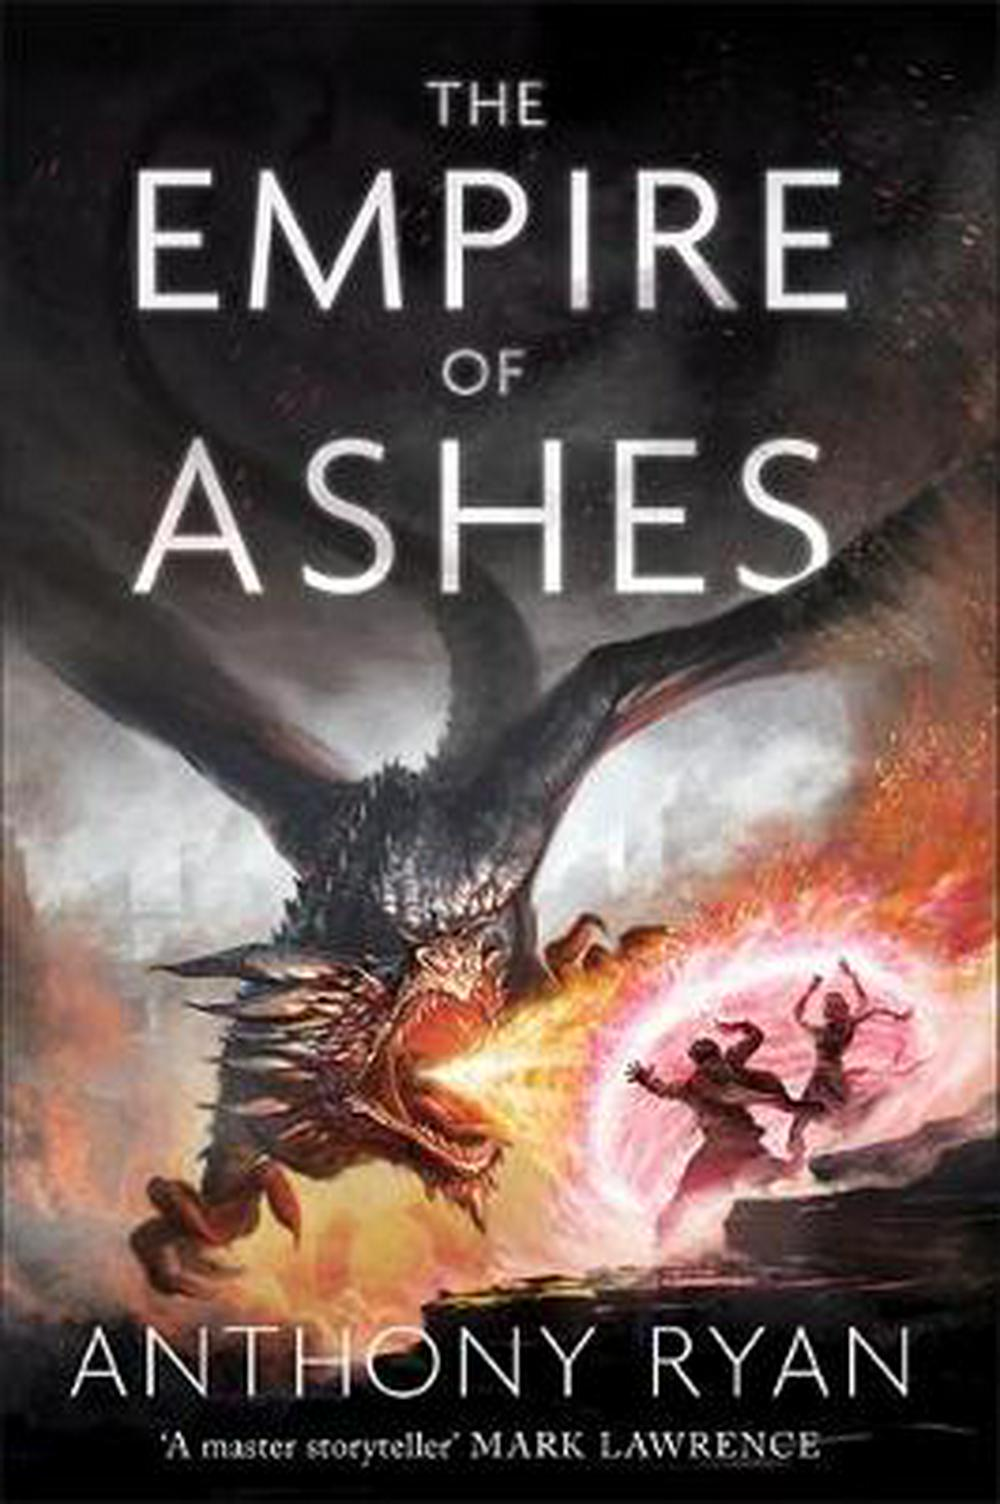 The Empire of AshesBook Three of Draconis Memoria